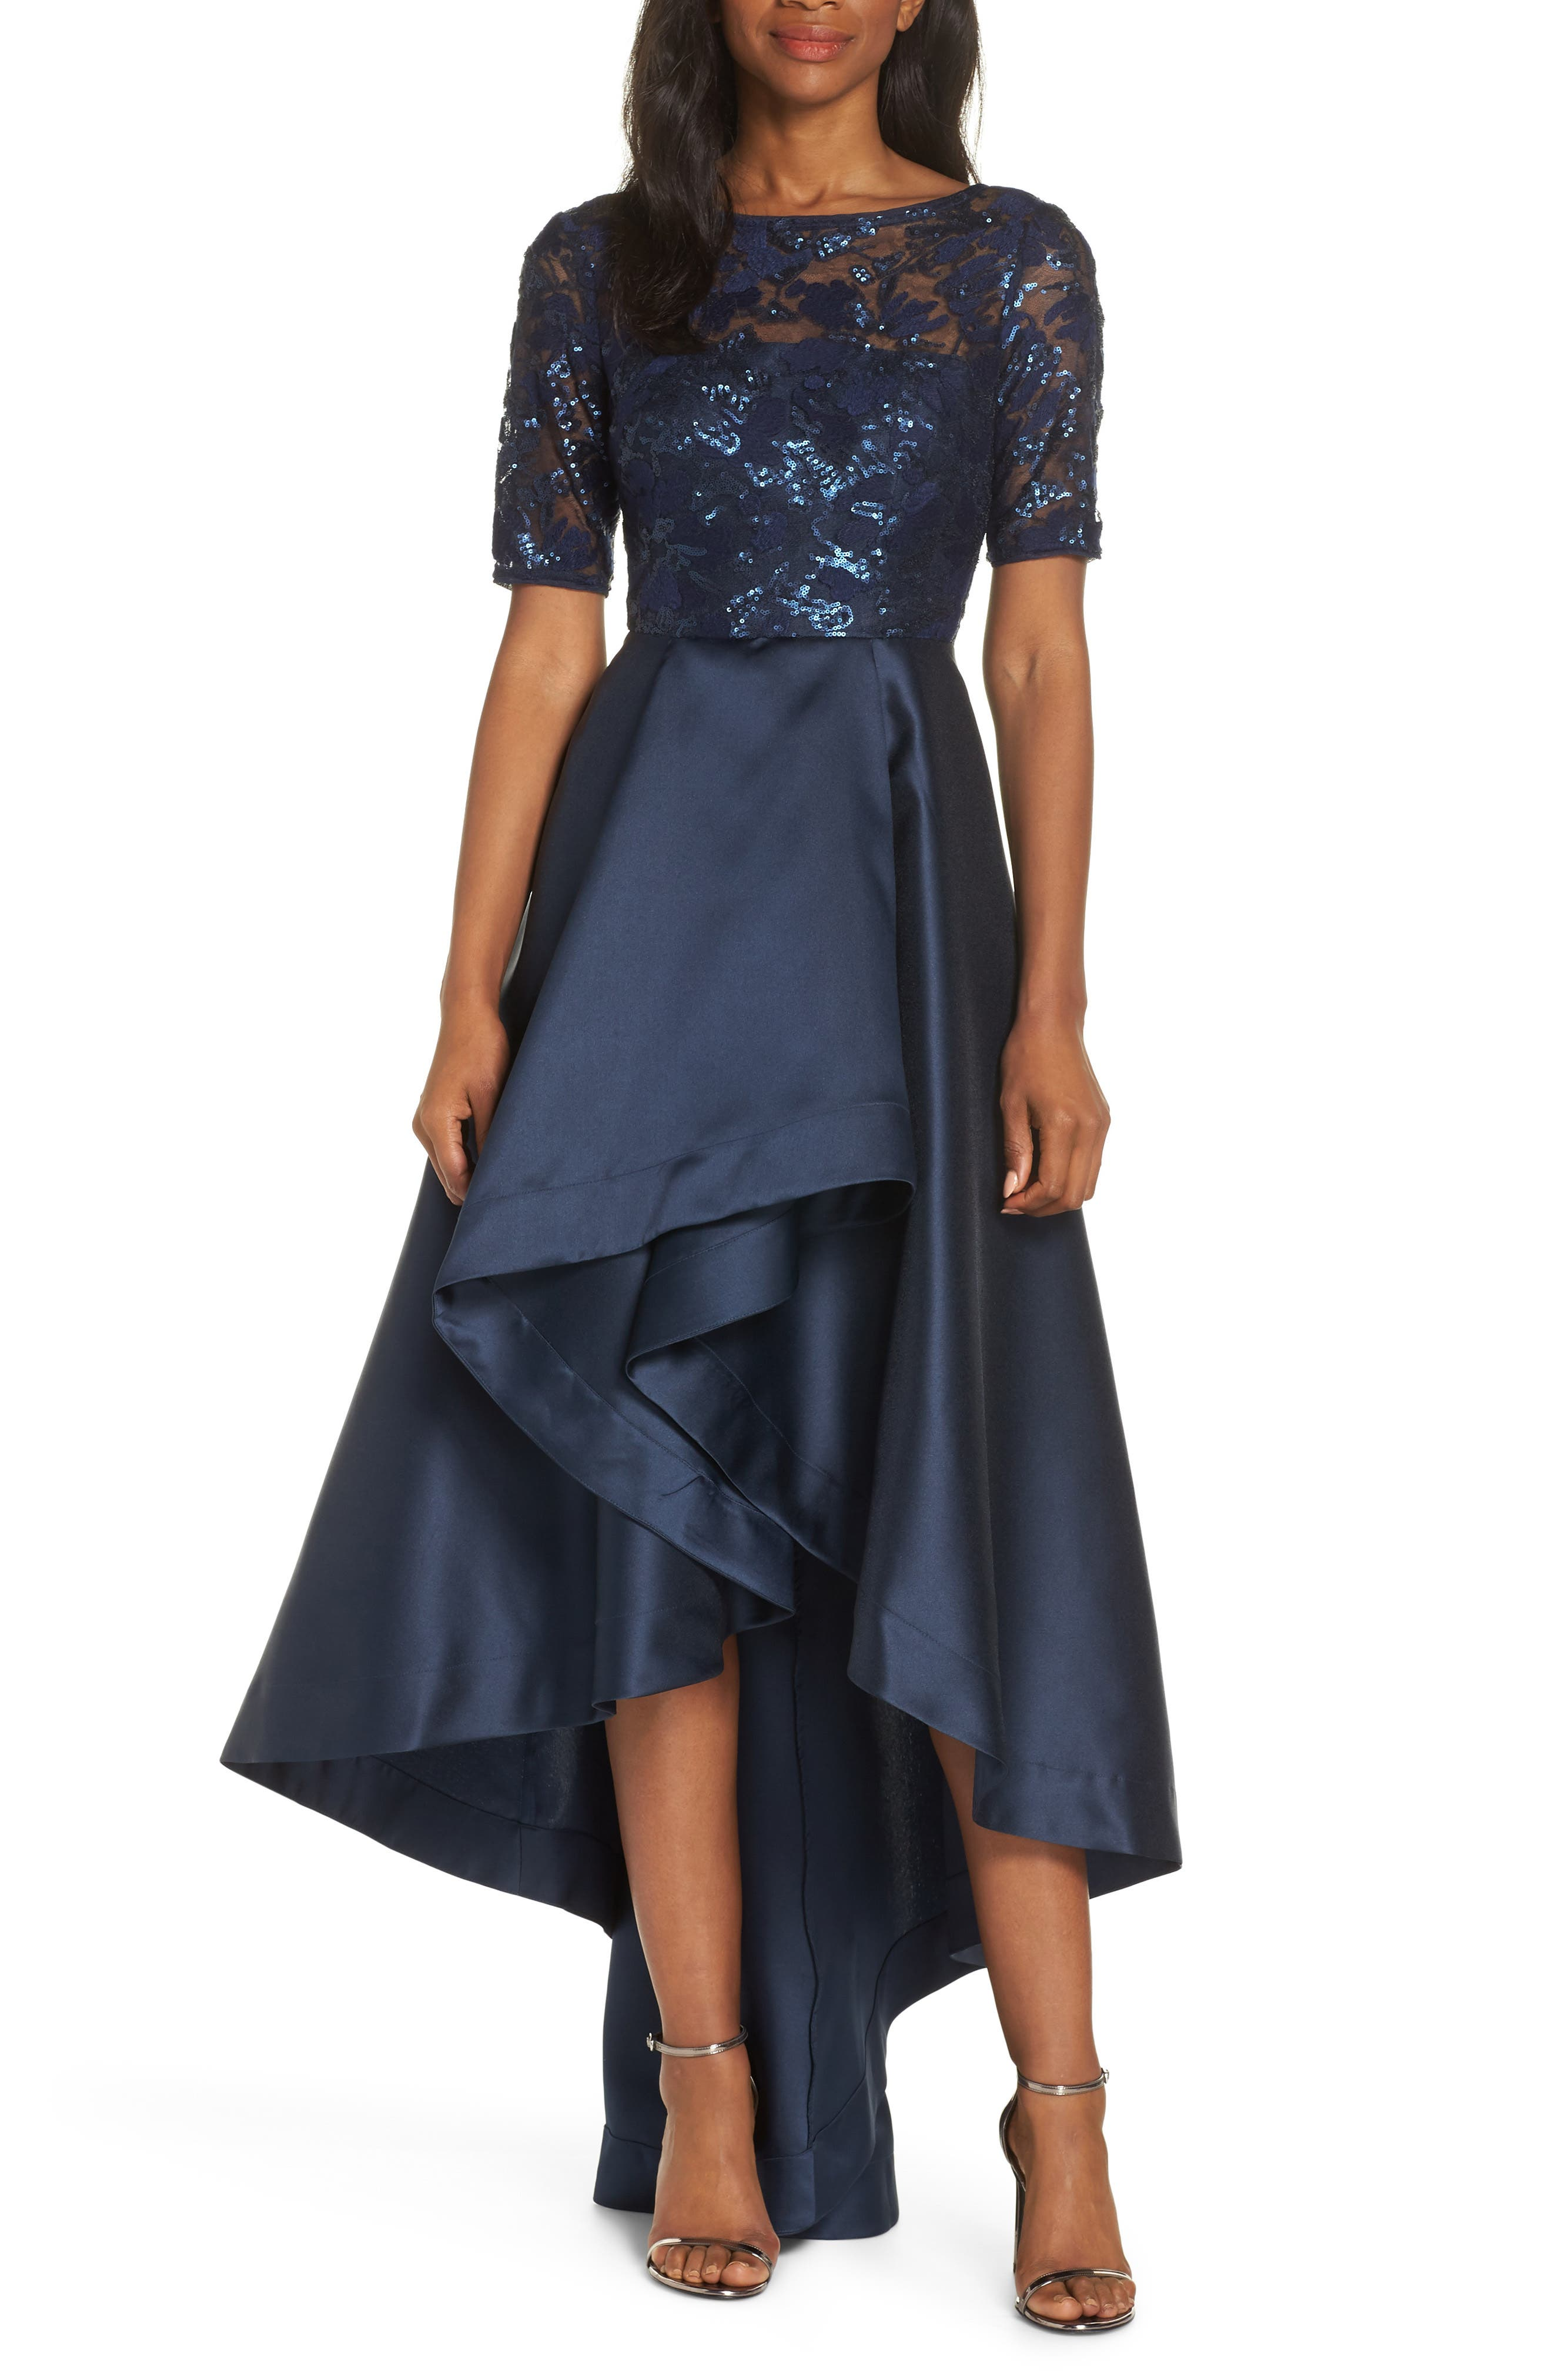 ADRIANNA PAPELL, Sequin Lace High/Low Evening Dress, Main thumbnail 1, color, MIDNIGHT